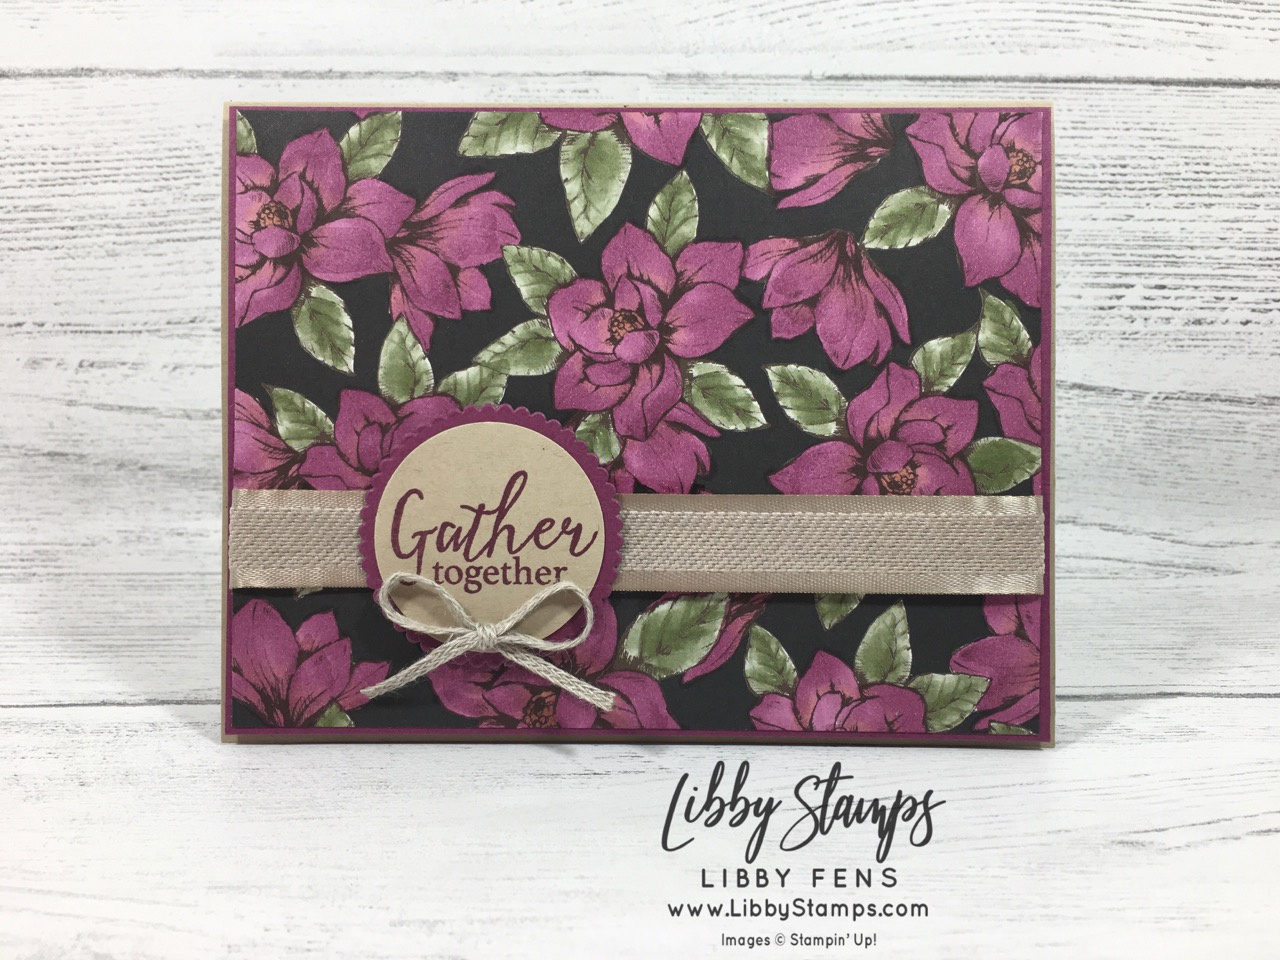 "libbystamps, Stampin' Up!, 3/16"" Braided Linen Trim, Come to Gather Ribbon, Story Label Punch, Magnolia Lane DSP, Tags Tags Tags, Tags Tags Tags Bundle, Trio of Tags Dies, Layering Circles Dies, Gather Together, CCMC"